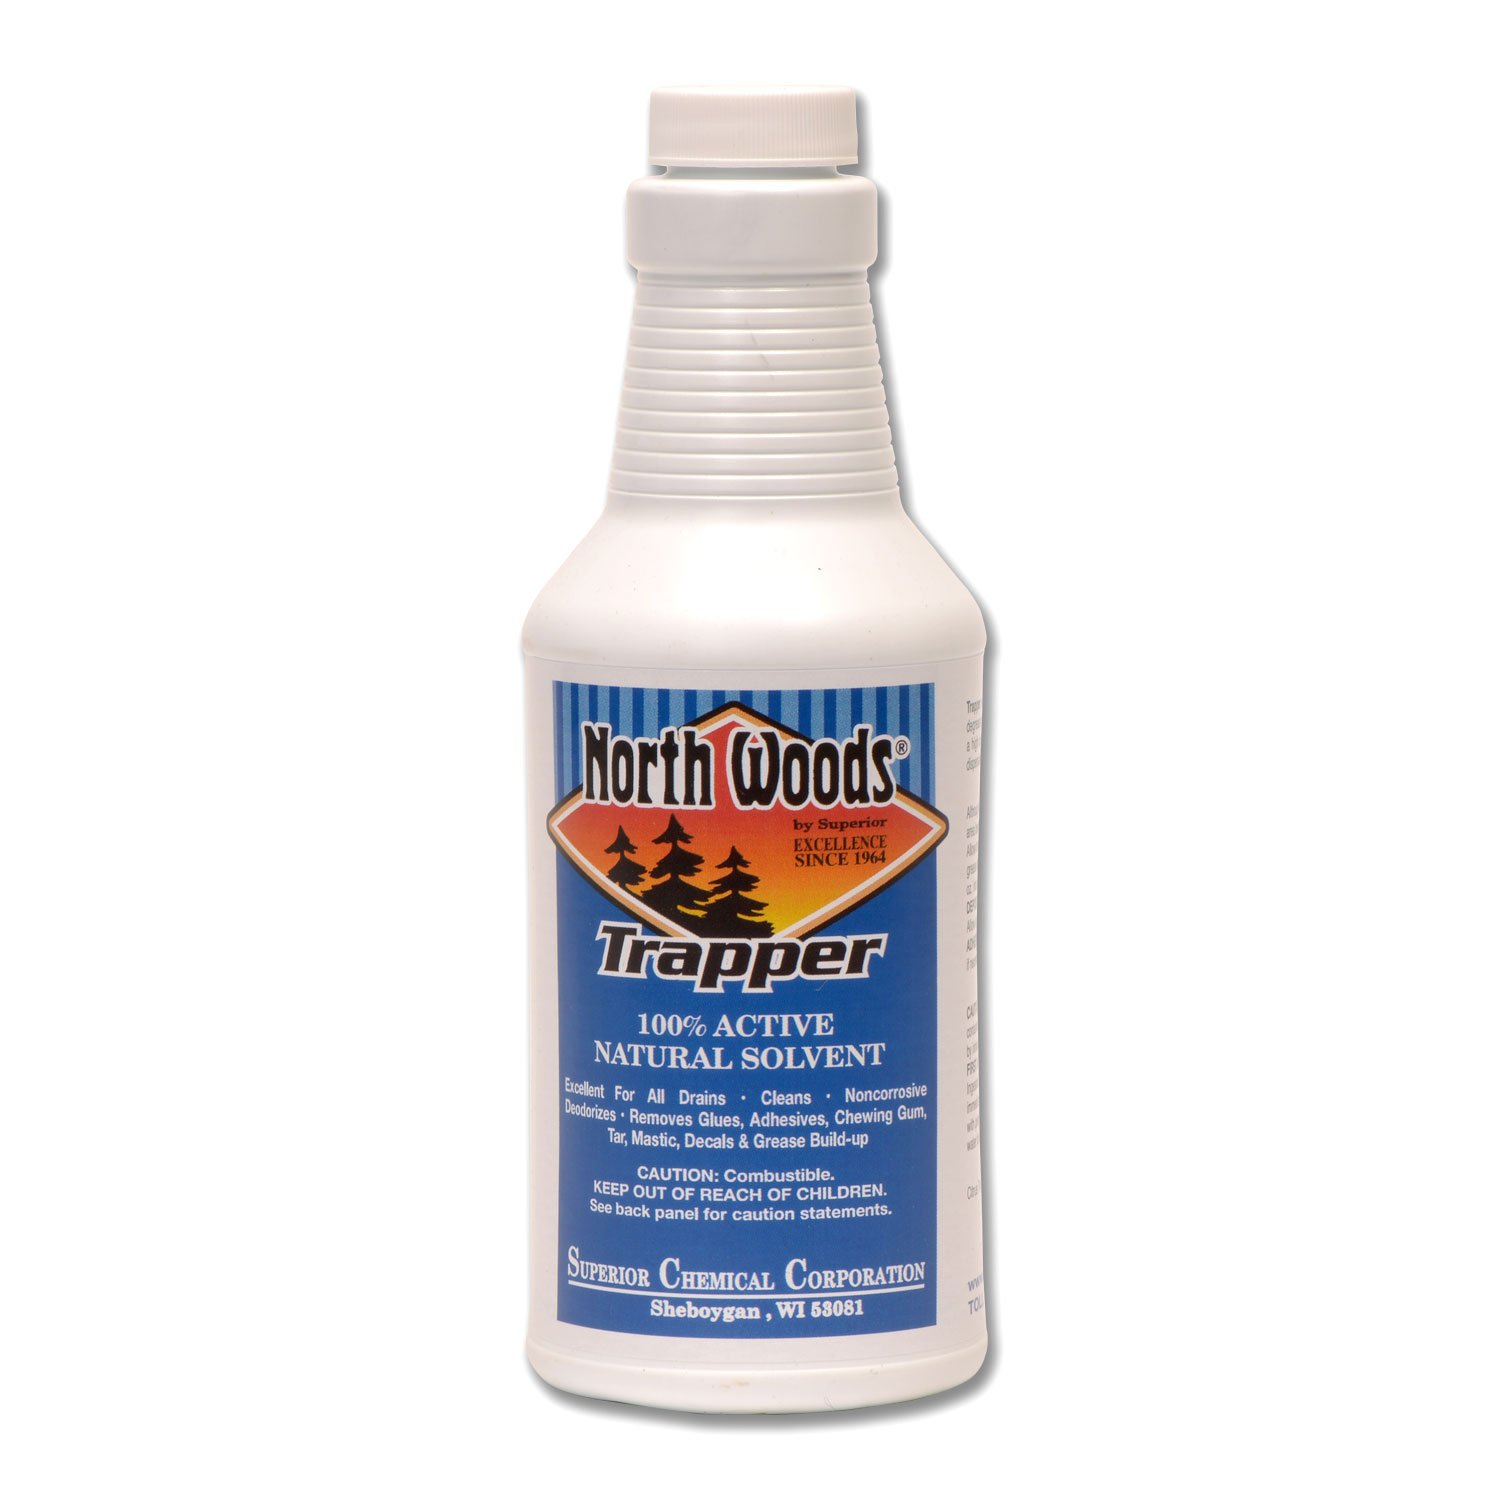 North Woods Trapper - 1 Natural Citrus Degreaser & Deodorizer (Pack of 12) by North Woods (Image #1)